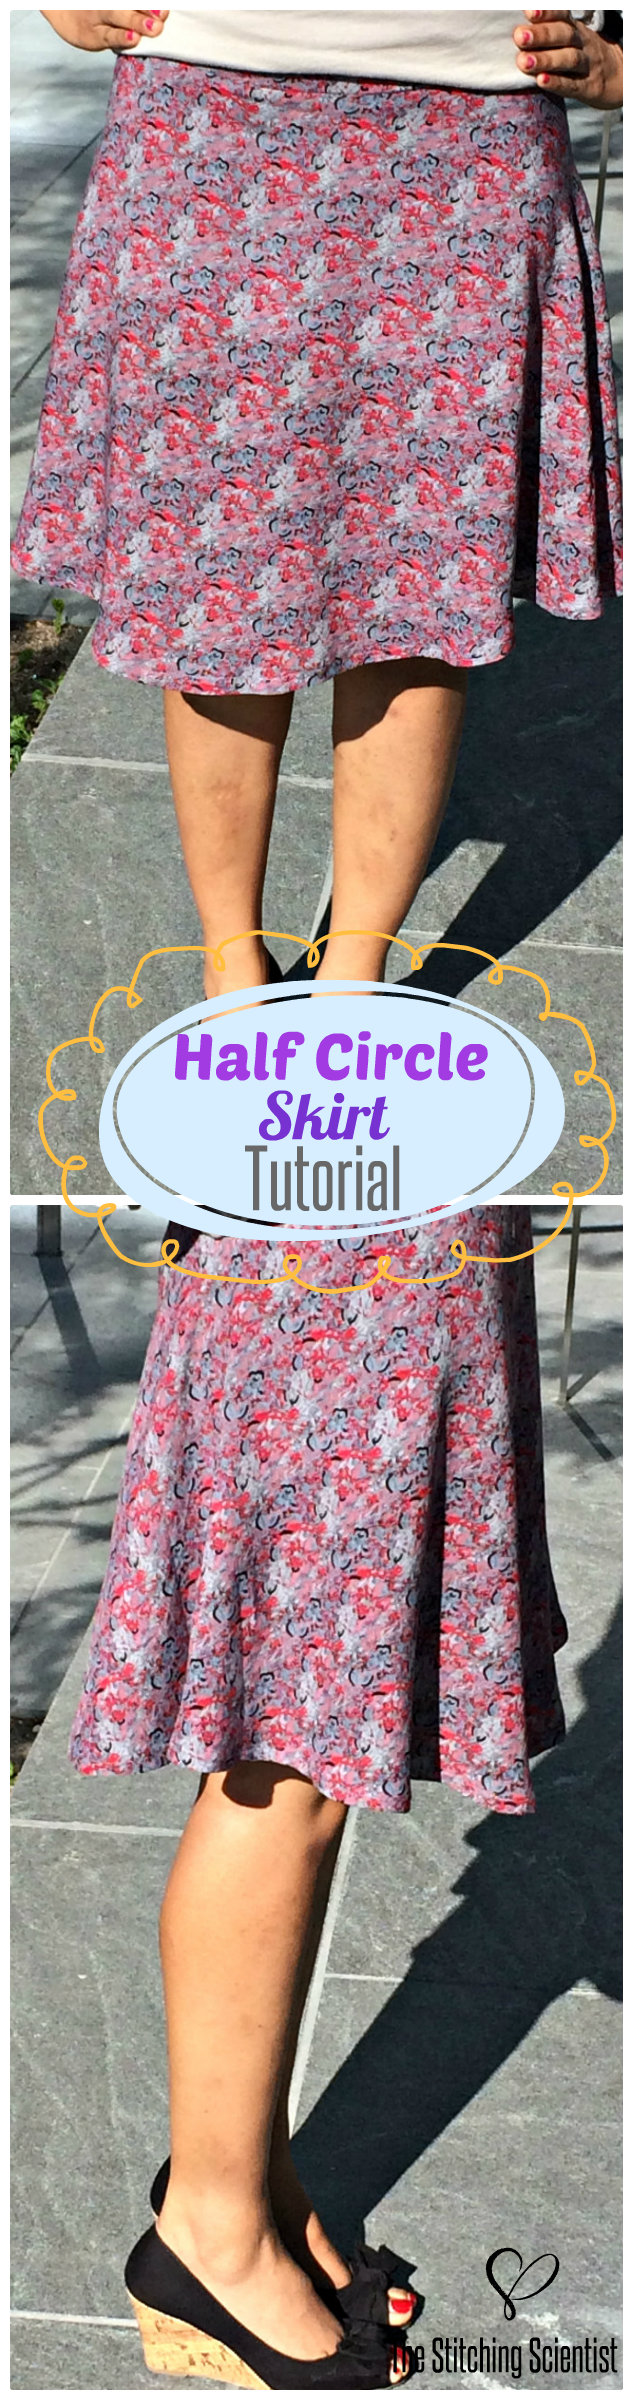 How to make a half circle skirt the stitching scientist jeuxipadfo Gallery